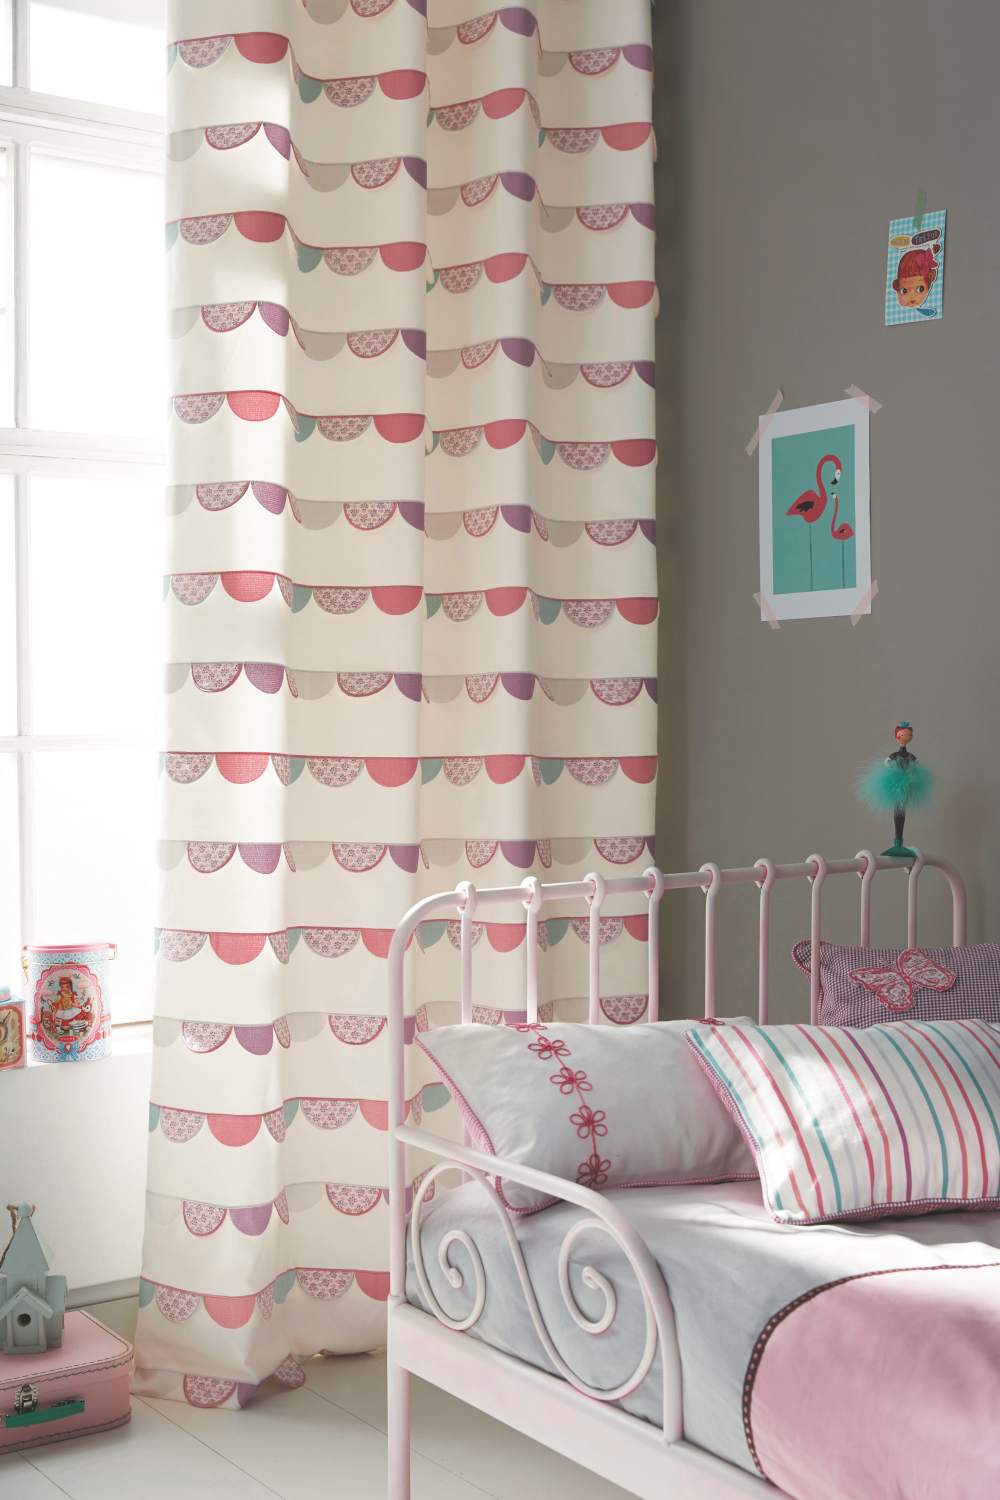 Romantisches kinderbett bilder ideen couchstyle for Kinderbett ideen